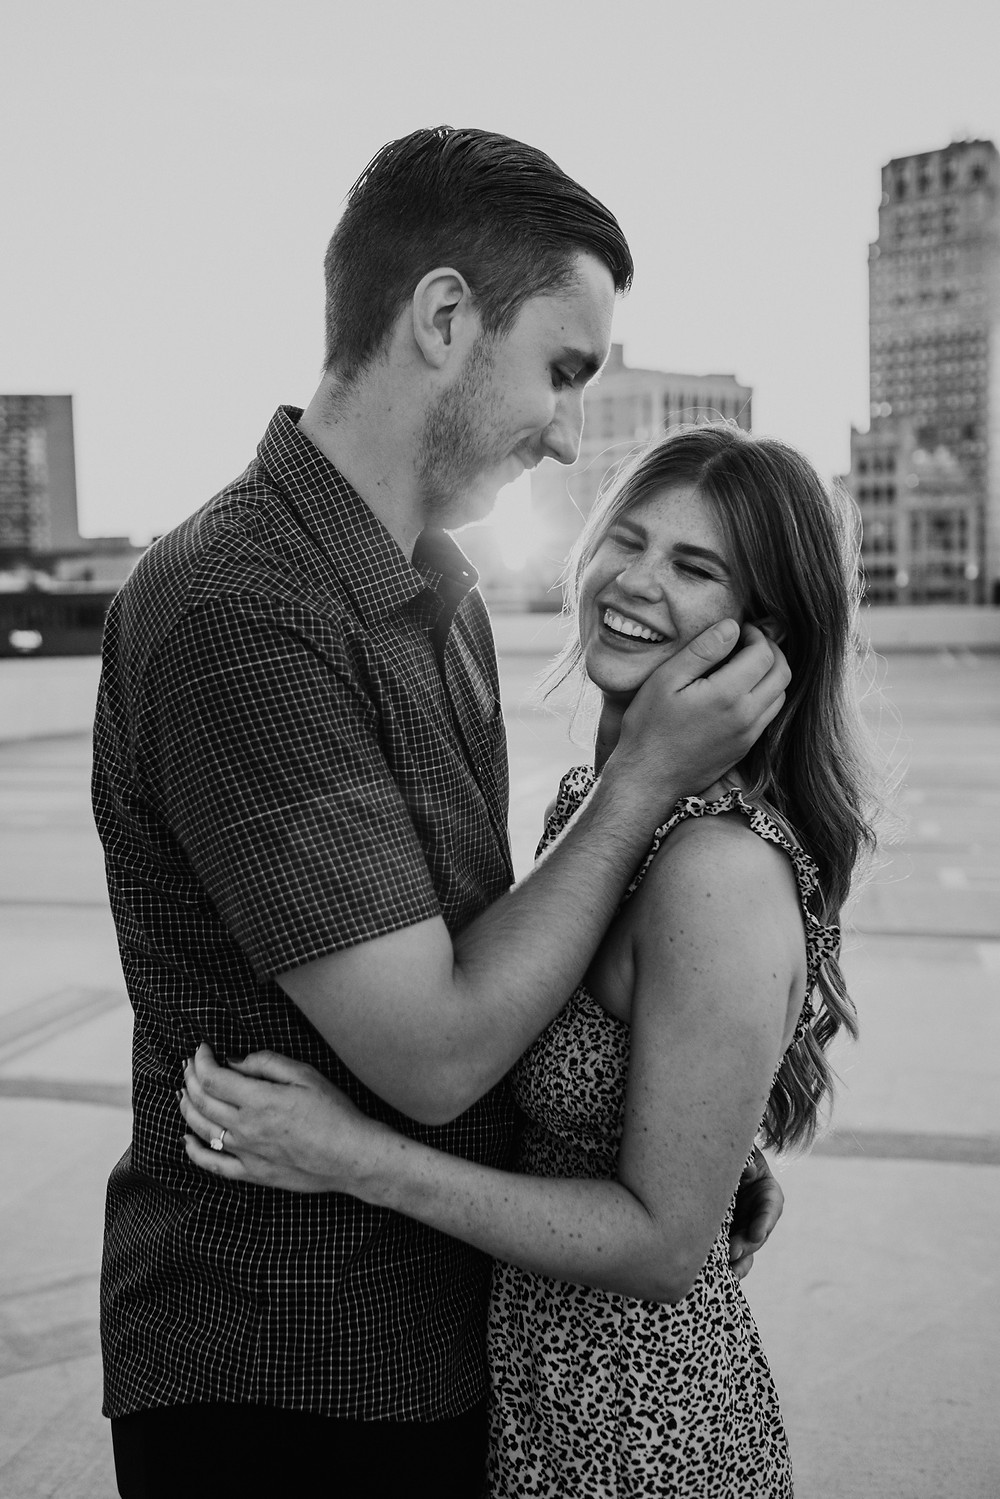 Black and white engagement portrait of couple smiling. Photographed by Nicole Leanne Photography.